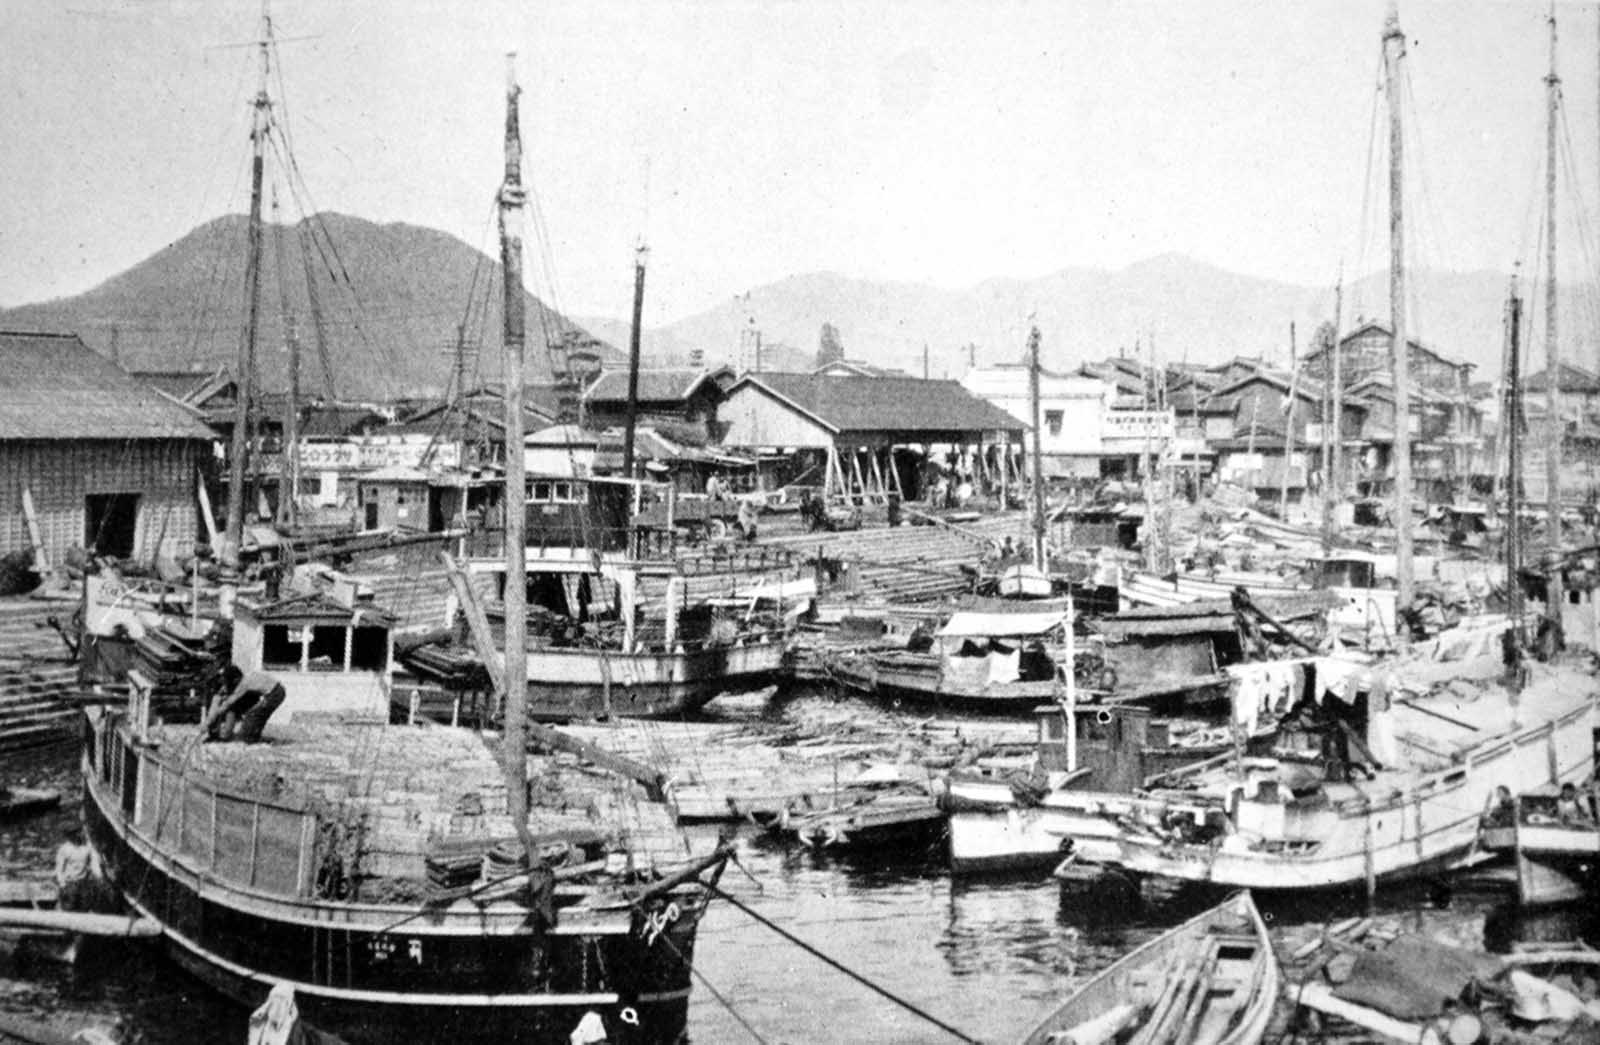 A pre-war photo of Ujina Harbor. This relatively small harbor was developed as the port for Hiroshima and was one of the principal embarkation depots for the Japanese Army during World War II.